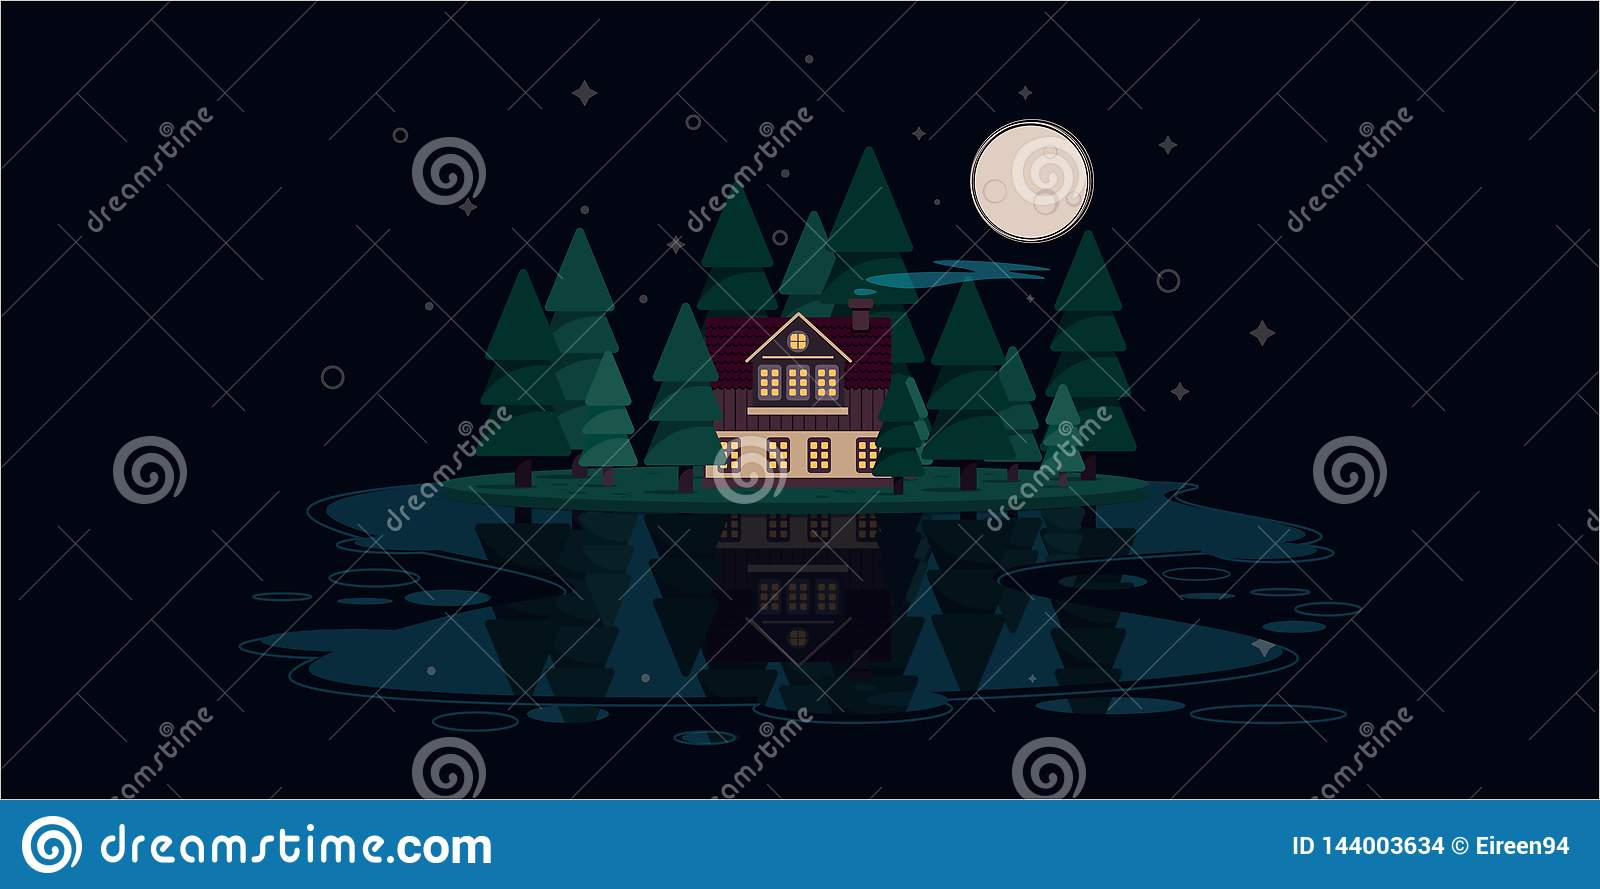 Large hut in the woods by the river at night